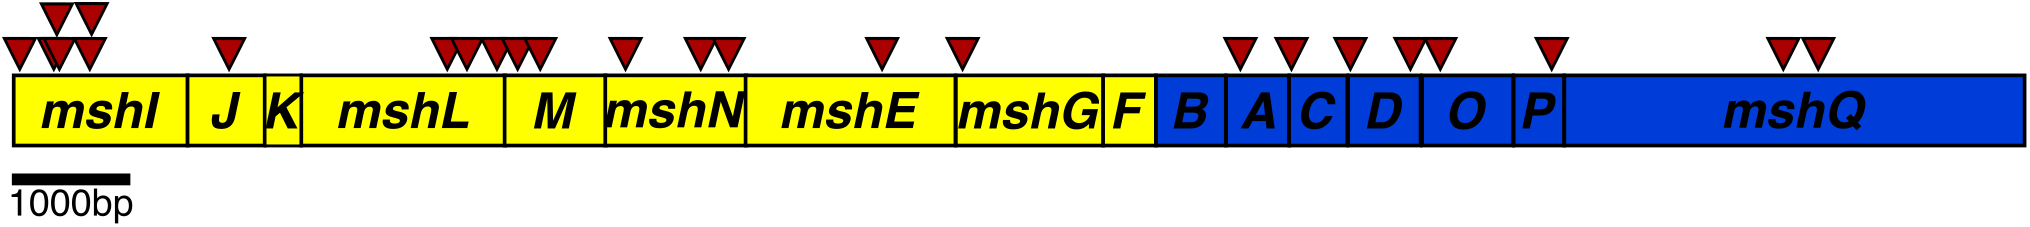 Schematic representation of the transposon insertions in the Msh operons.